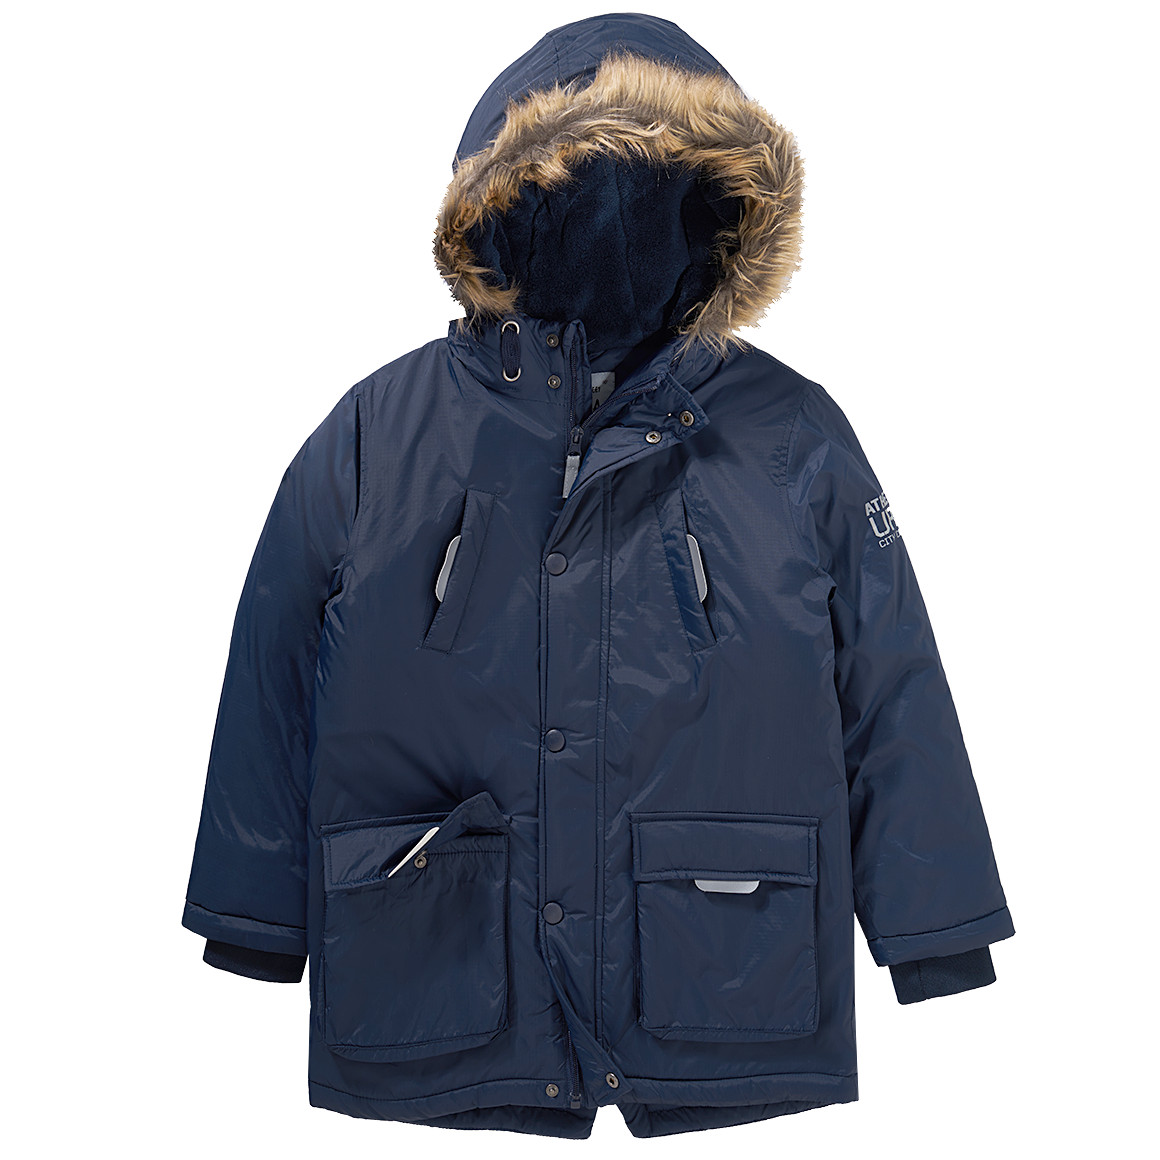 Boysjacken - Jungen Parka mit Kapuze - Onlineshop Ernstings family